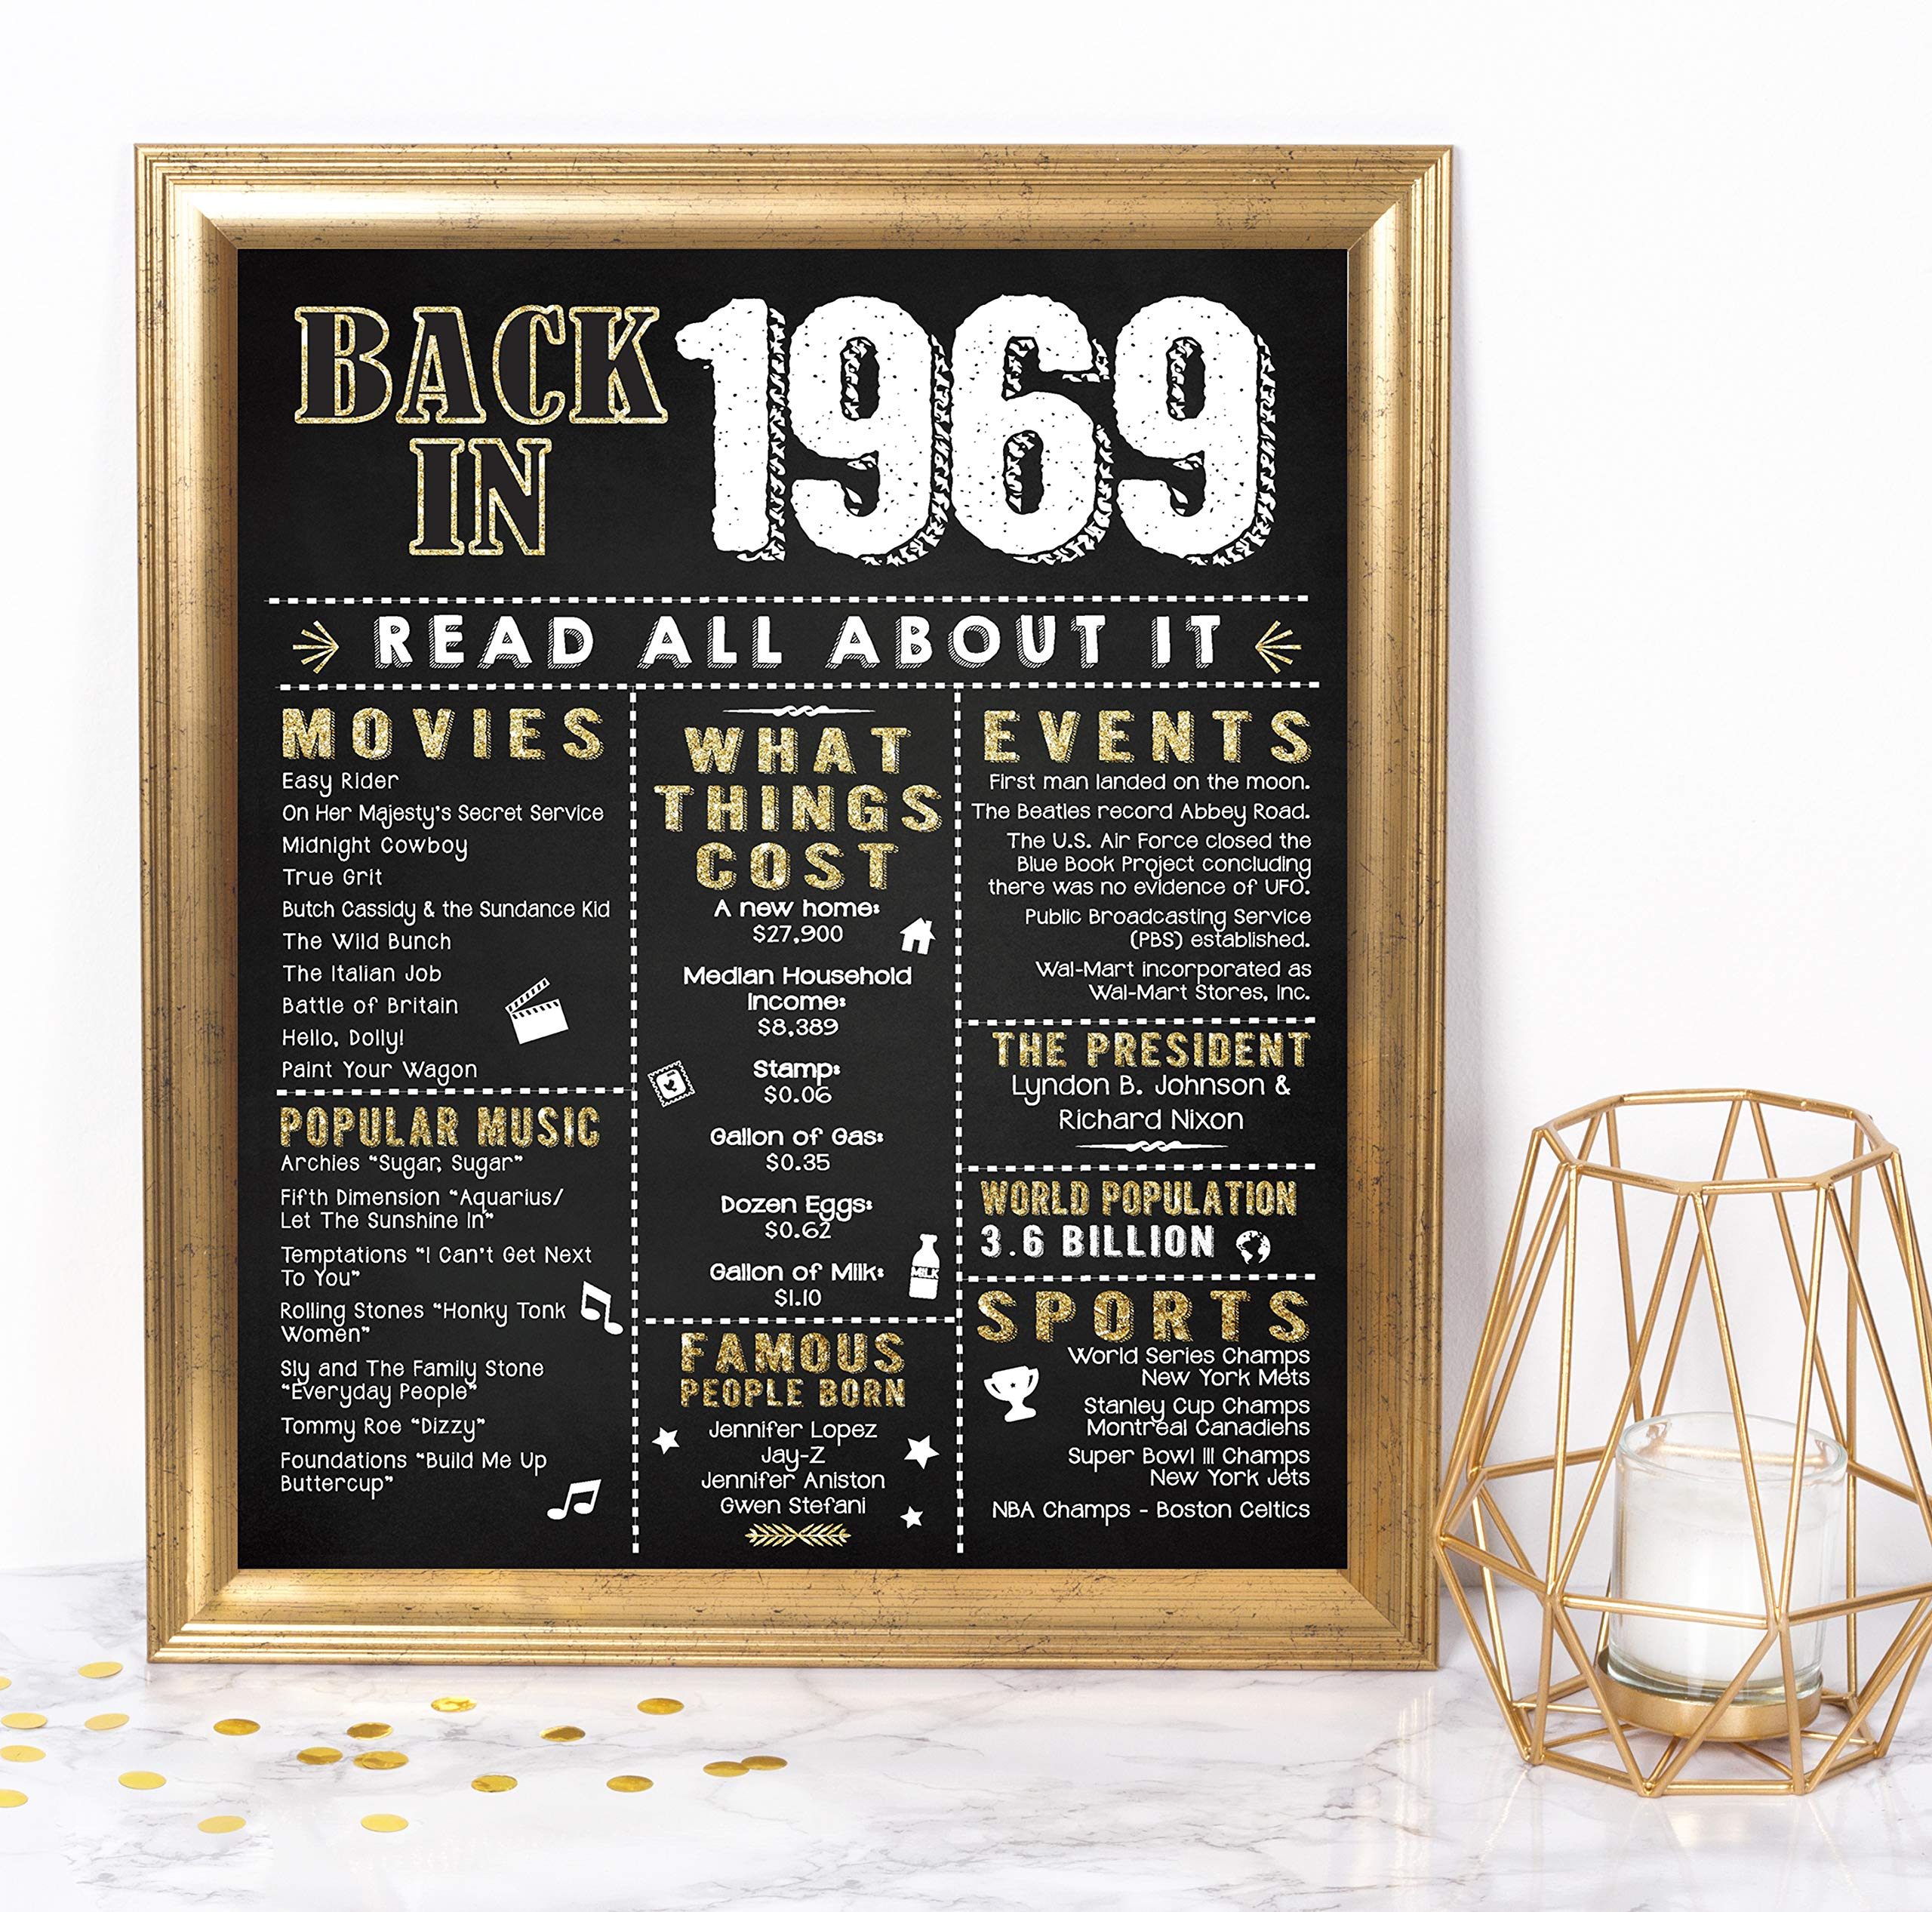 9a5f5848ae0c9 Katie Doodle 50th Birthday Decorations Gifts for Women or Men | Includes  8x10 Back-in